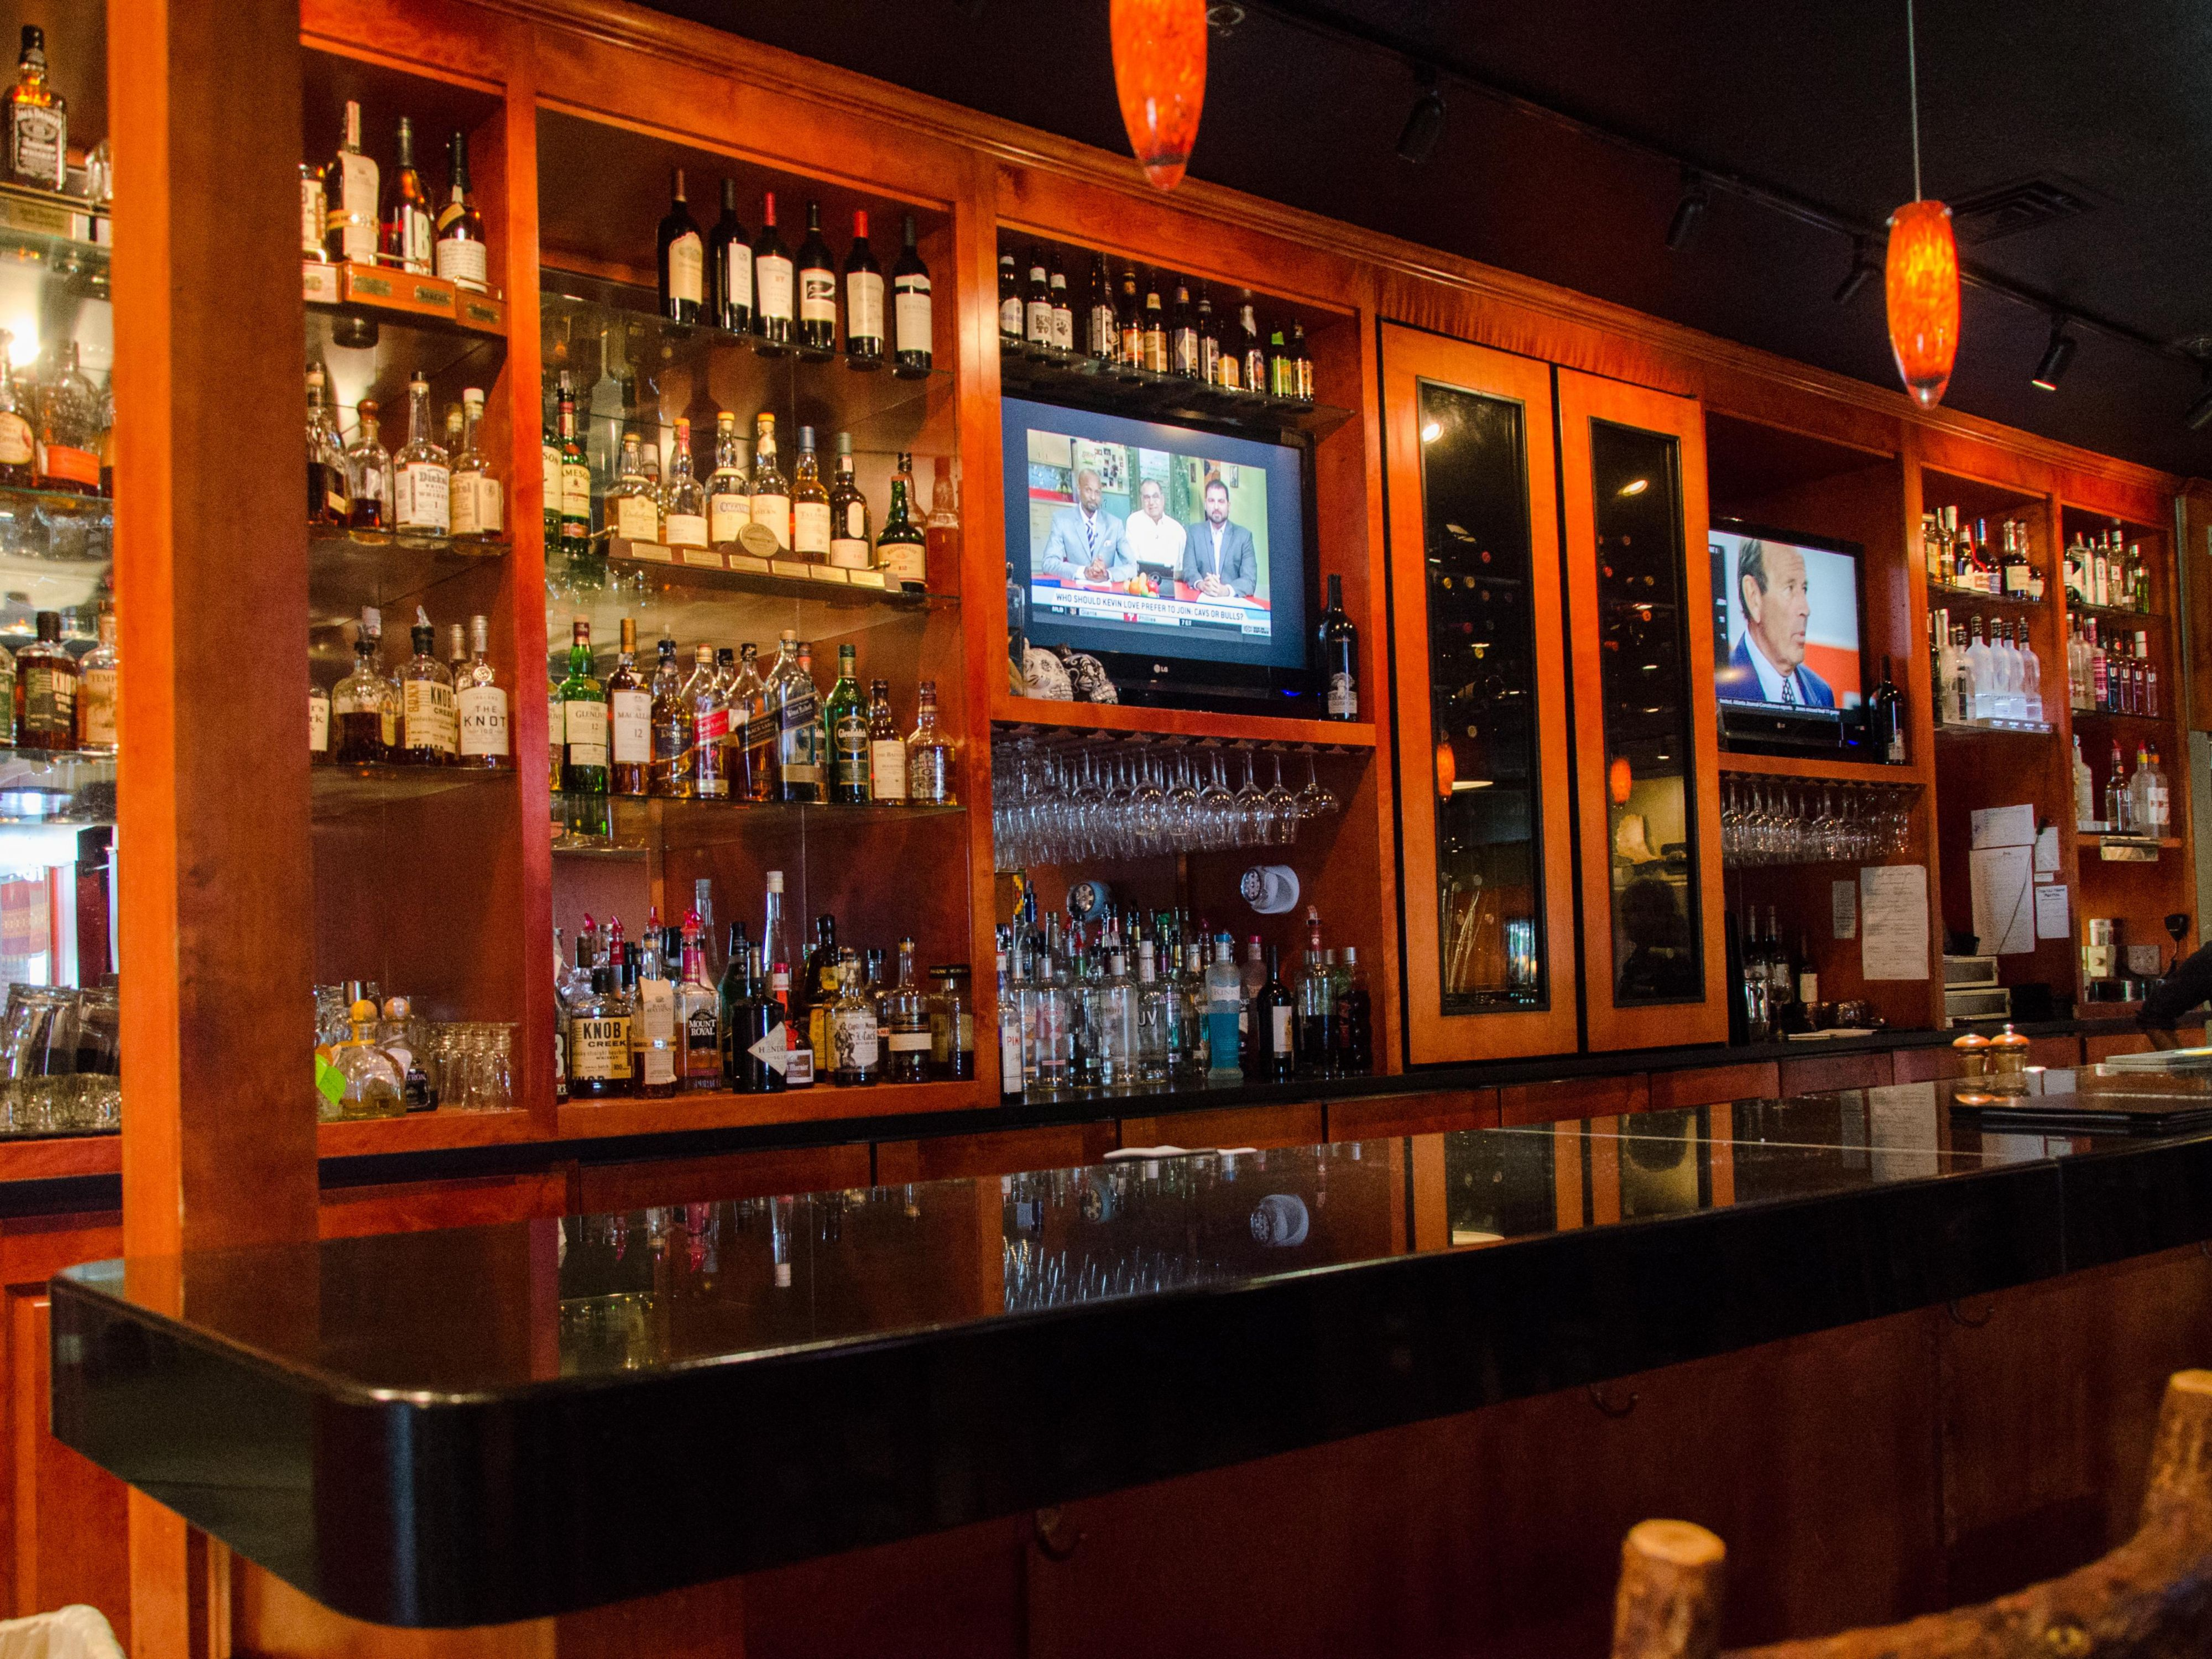 Grab a refreshing drink in the bar at Thunder Bay Grille